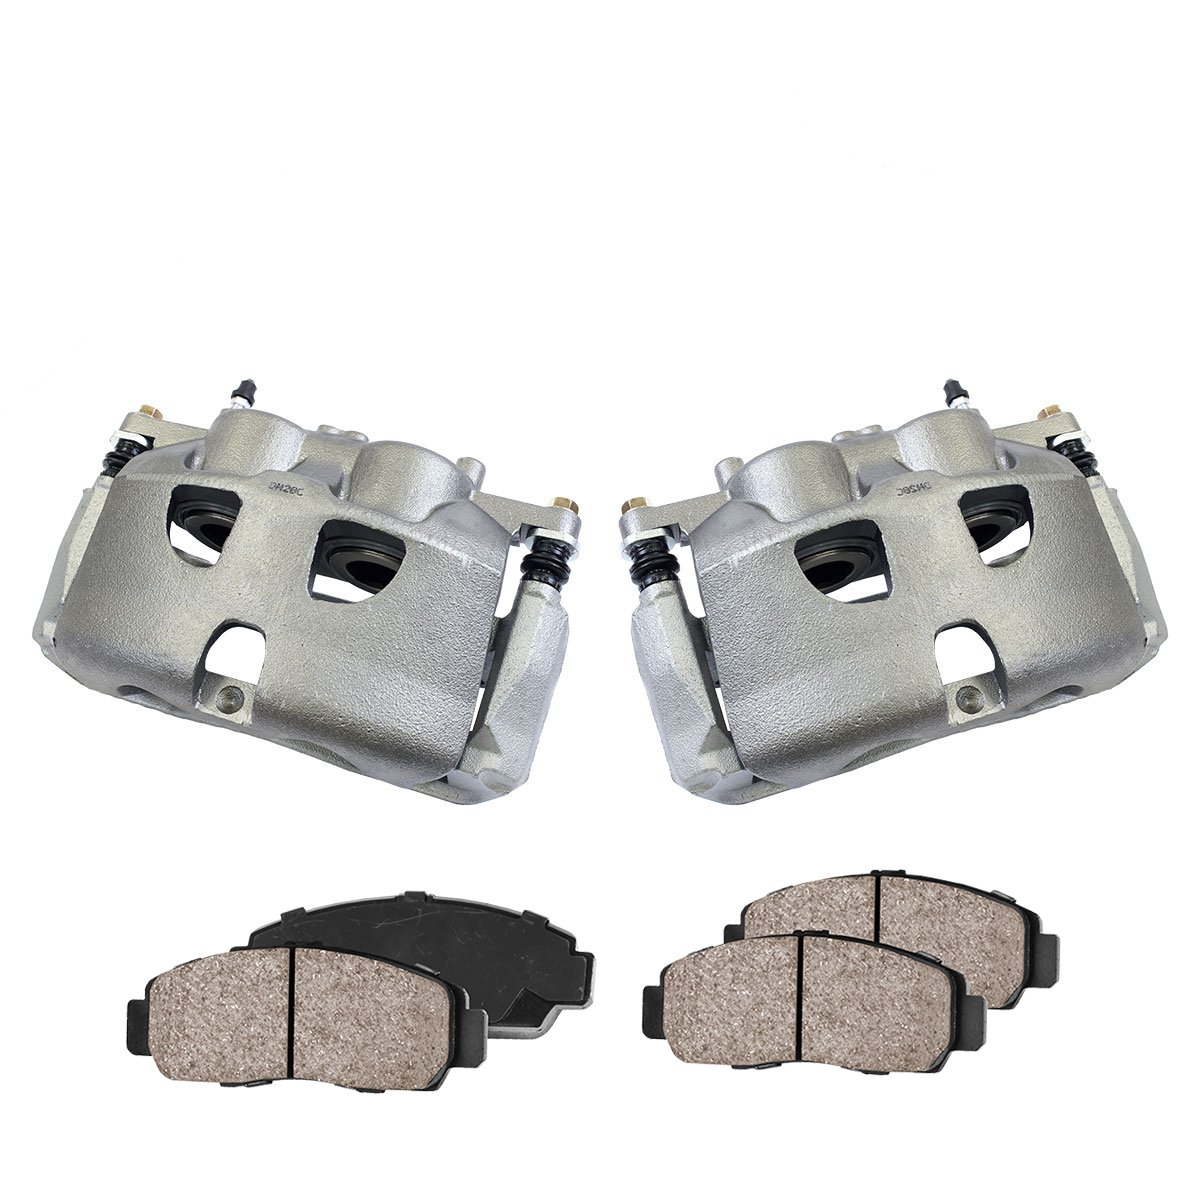 CCK02783 [2] FRONT Premium Loaded OE Caliper Assembly Set + [4] Quiet Low Dust Ceramic Brake Pads Callahan Brake Parts